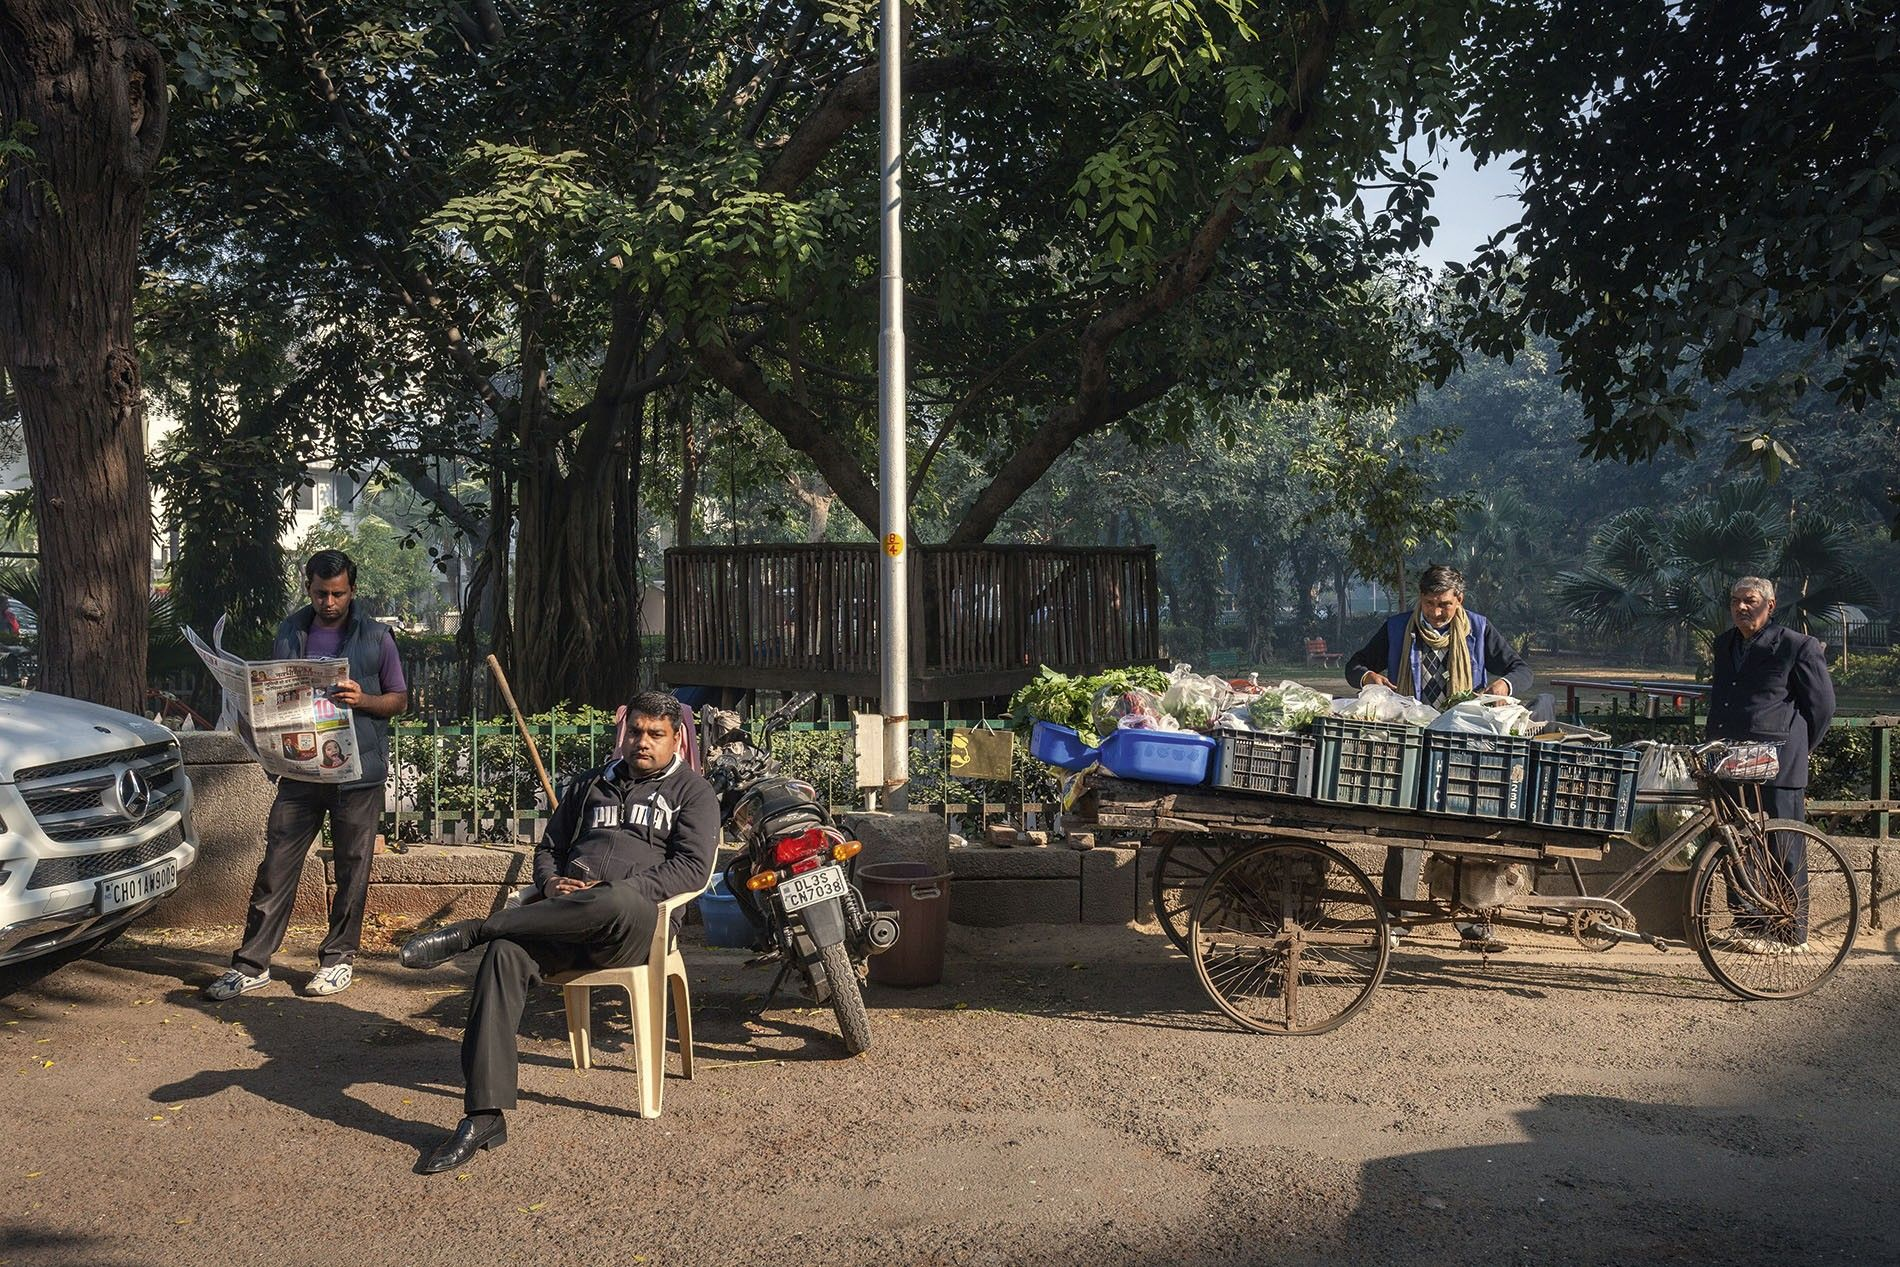 The Chandra's vegetable vendor checks his stock, while a driver reads the paper and a guard looks on.